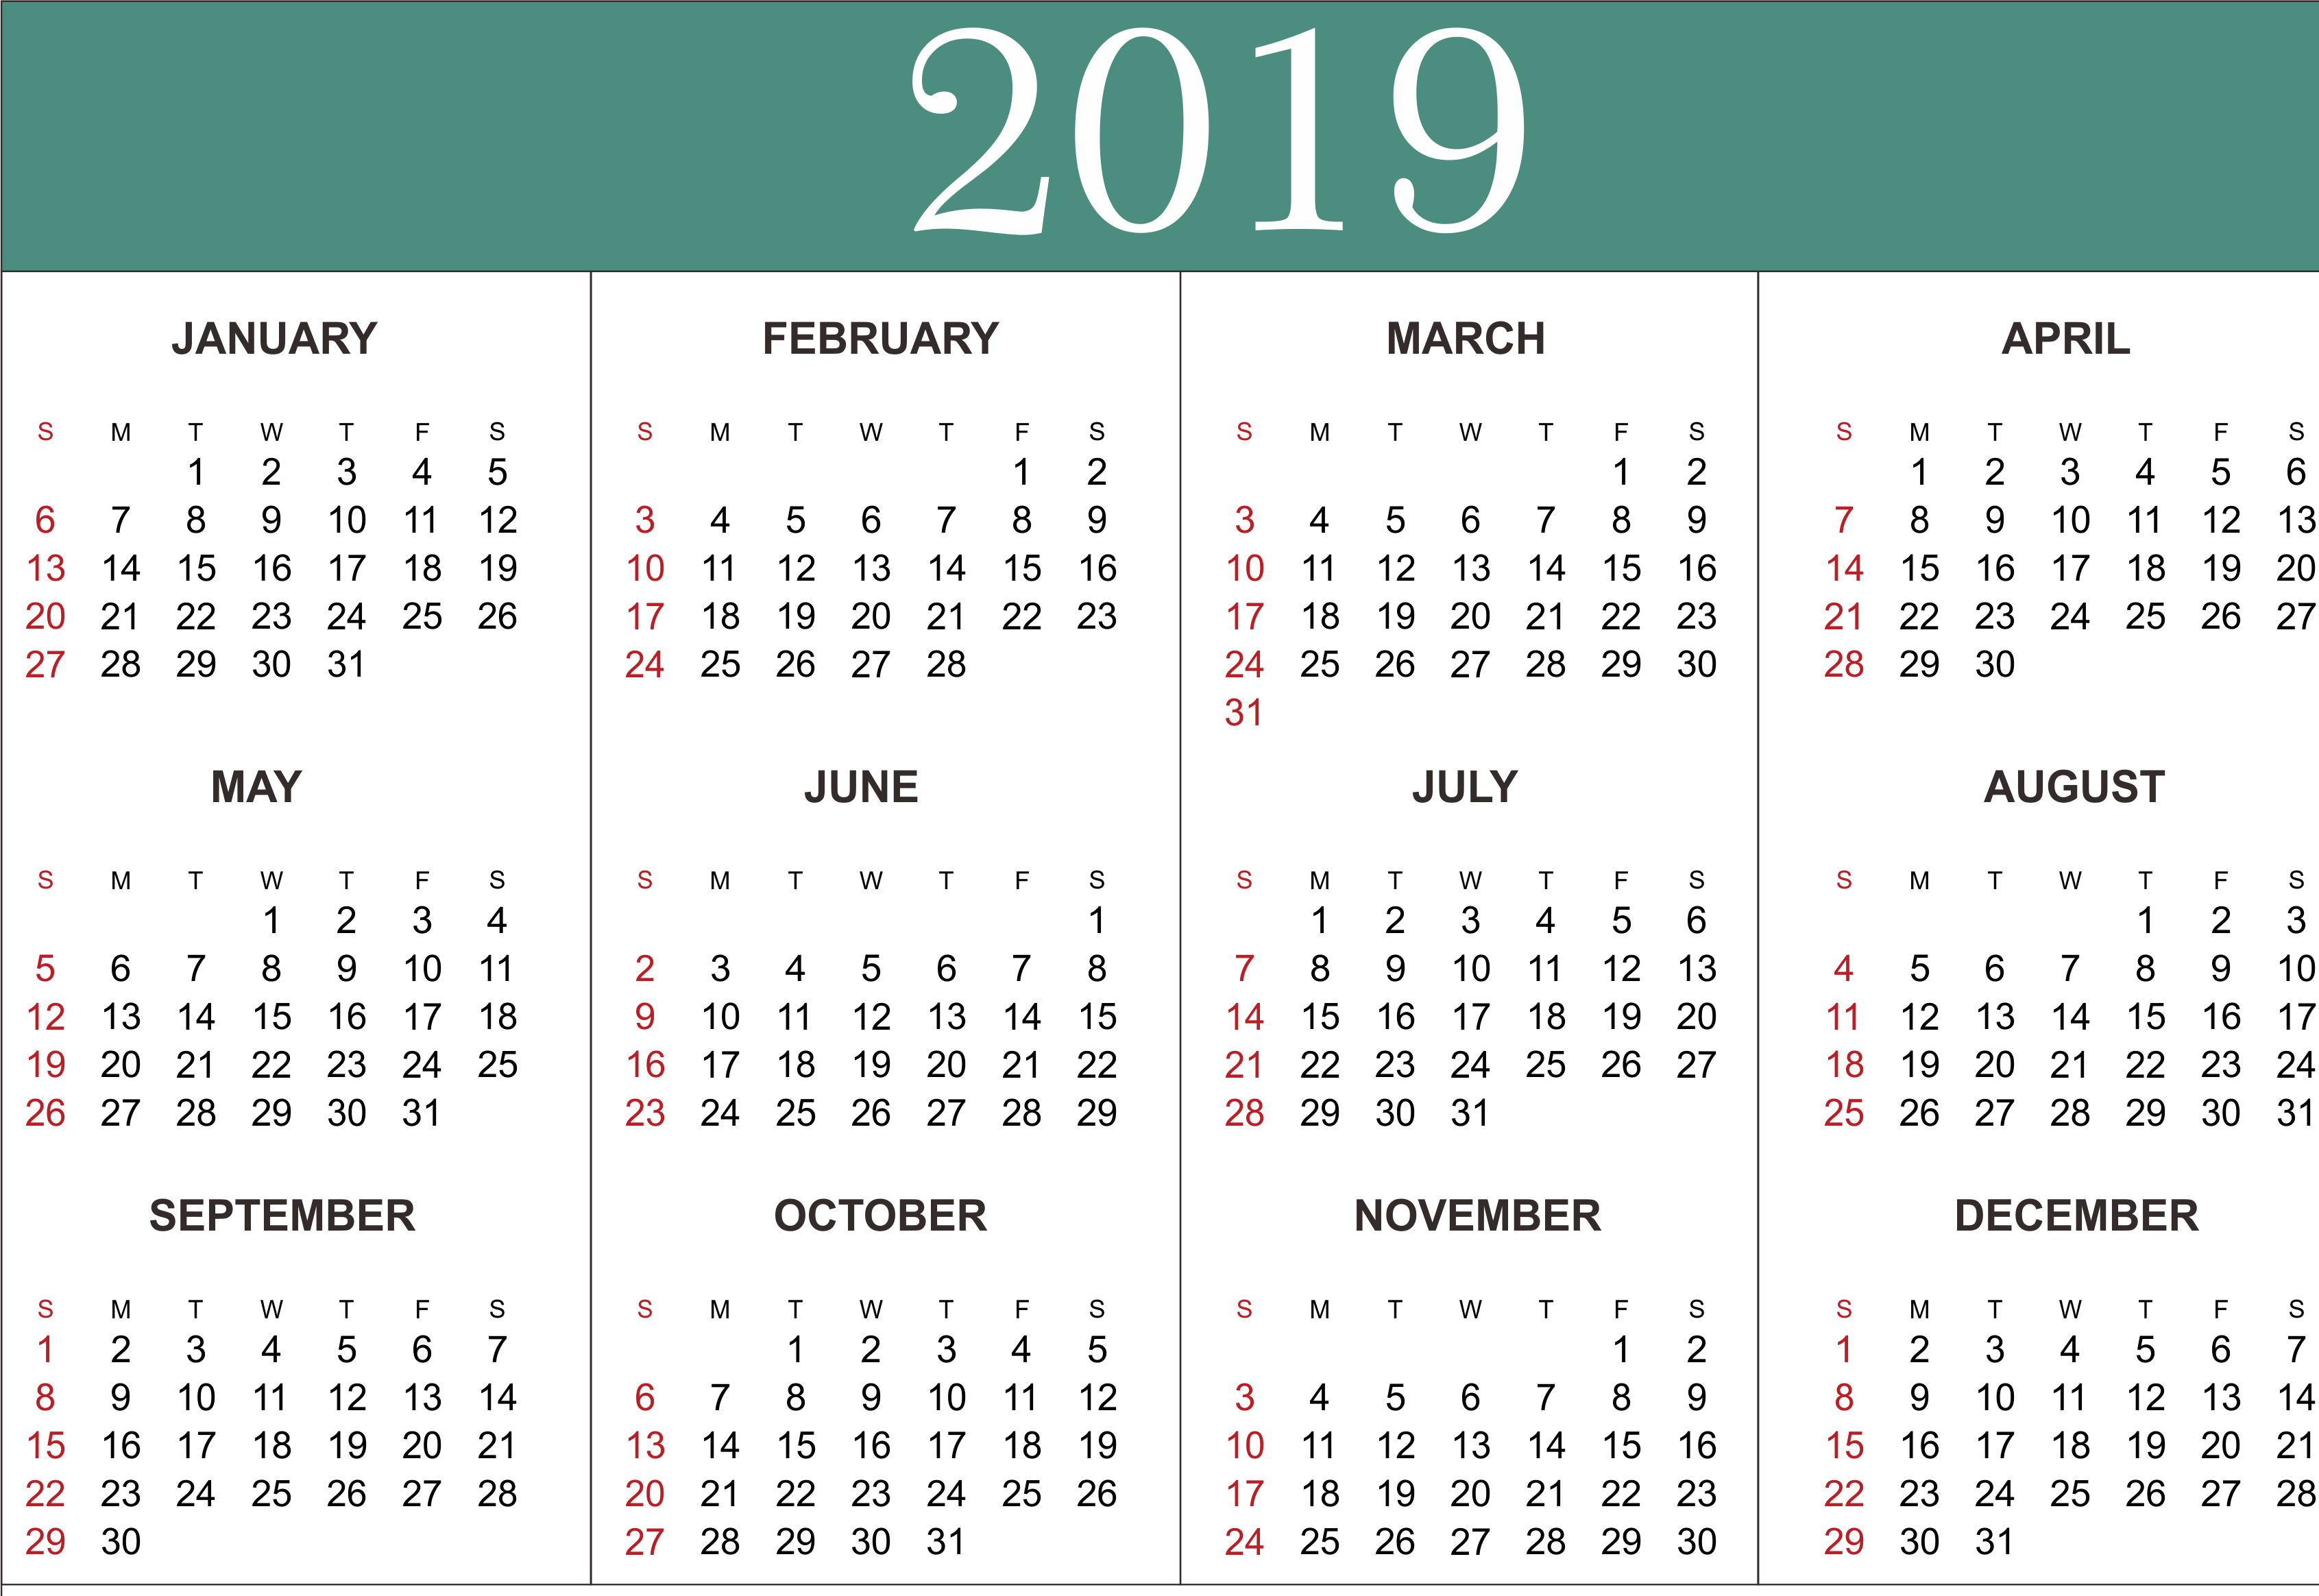 Free Yearly Calendar 2019 - Printable Blank Templates - Calendar Calendar 2019 Entire Year